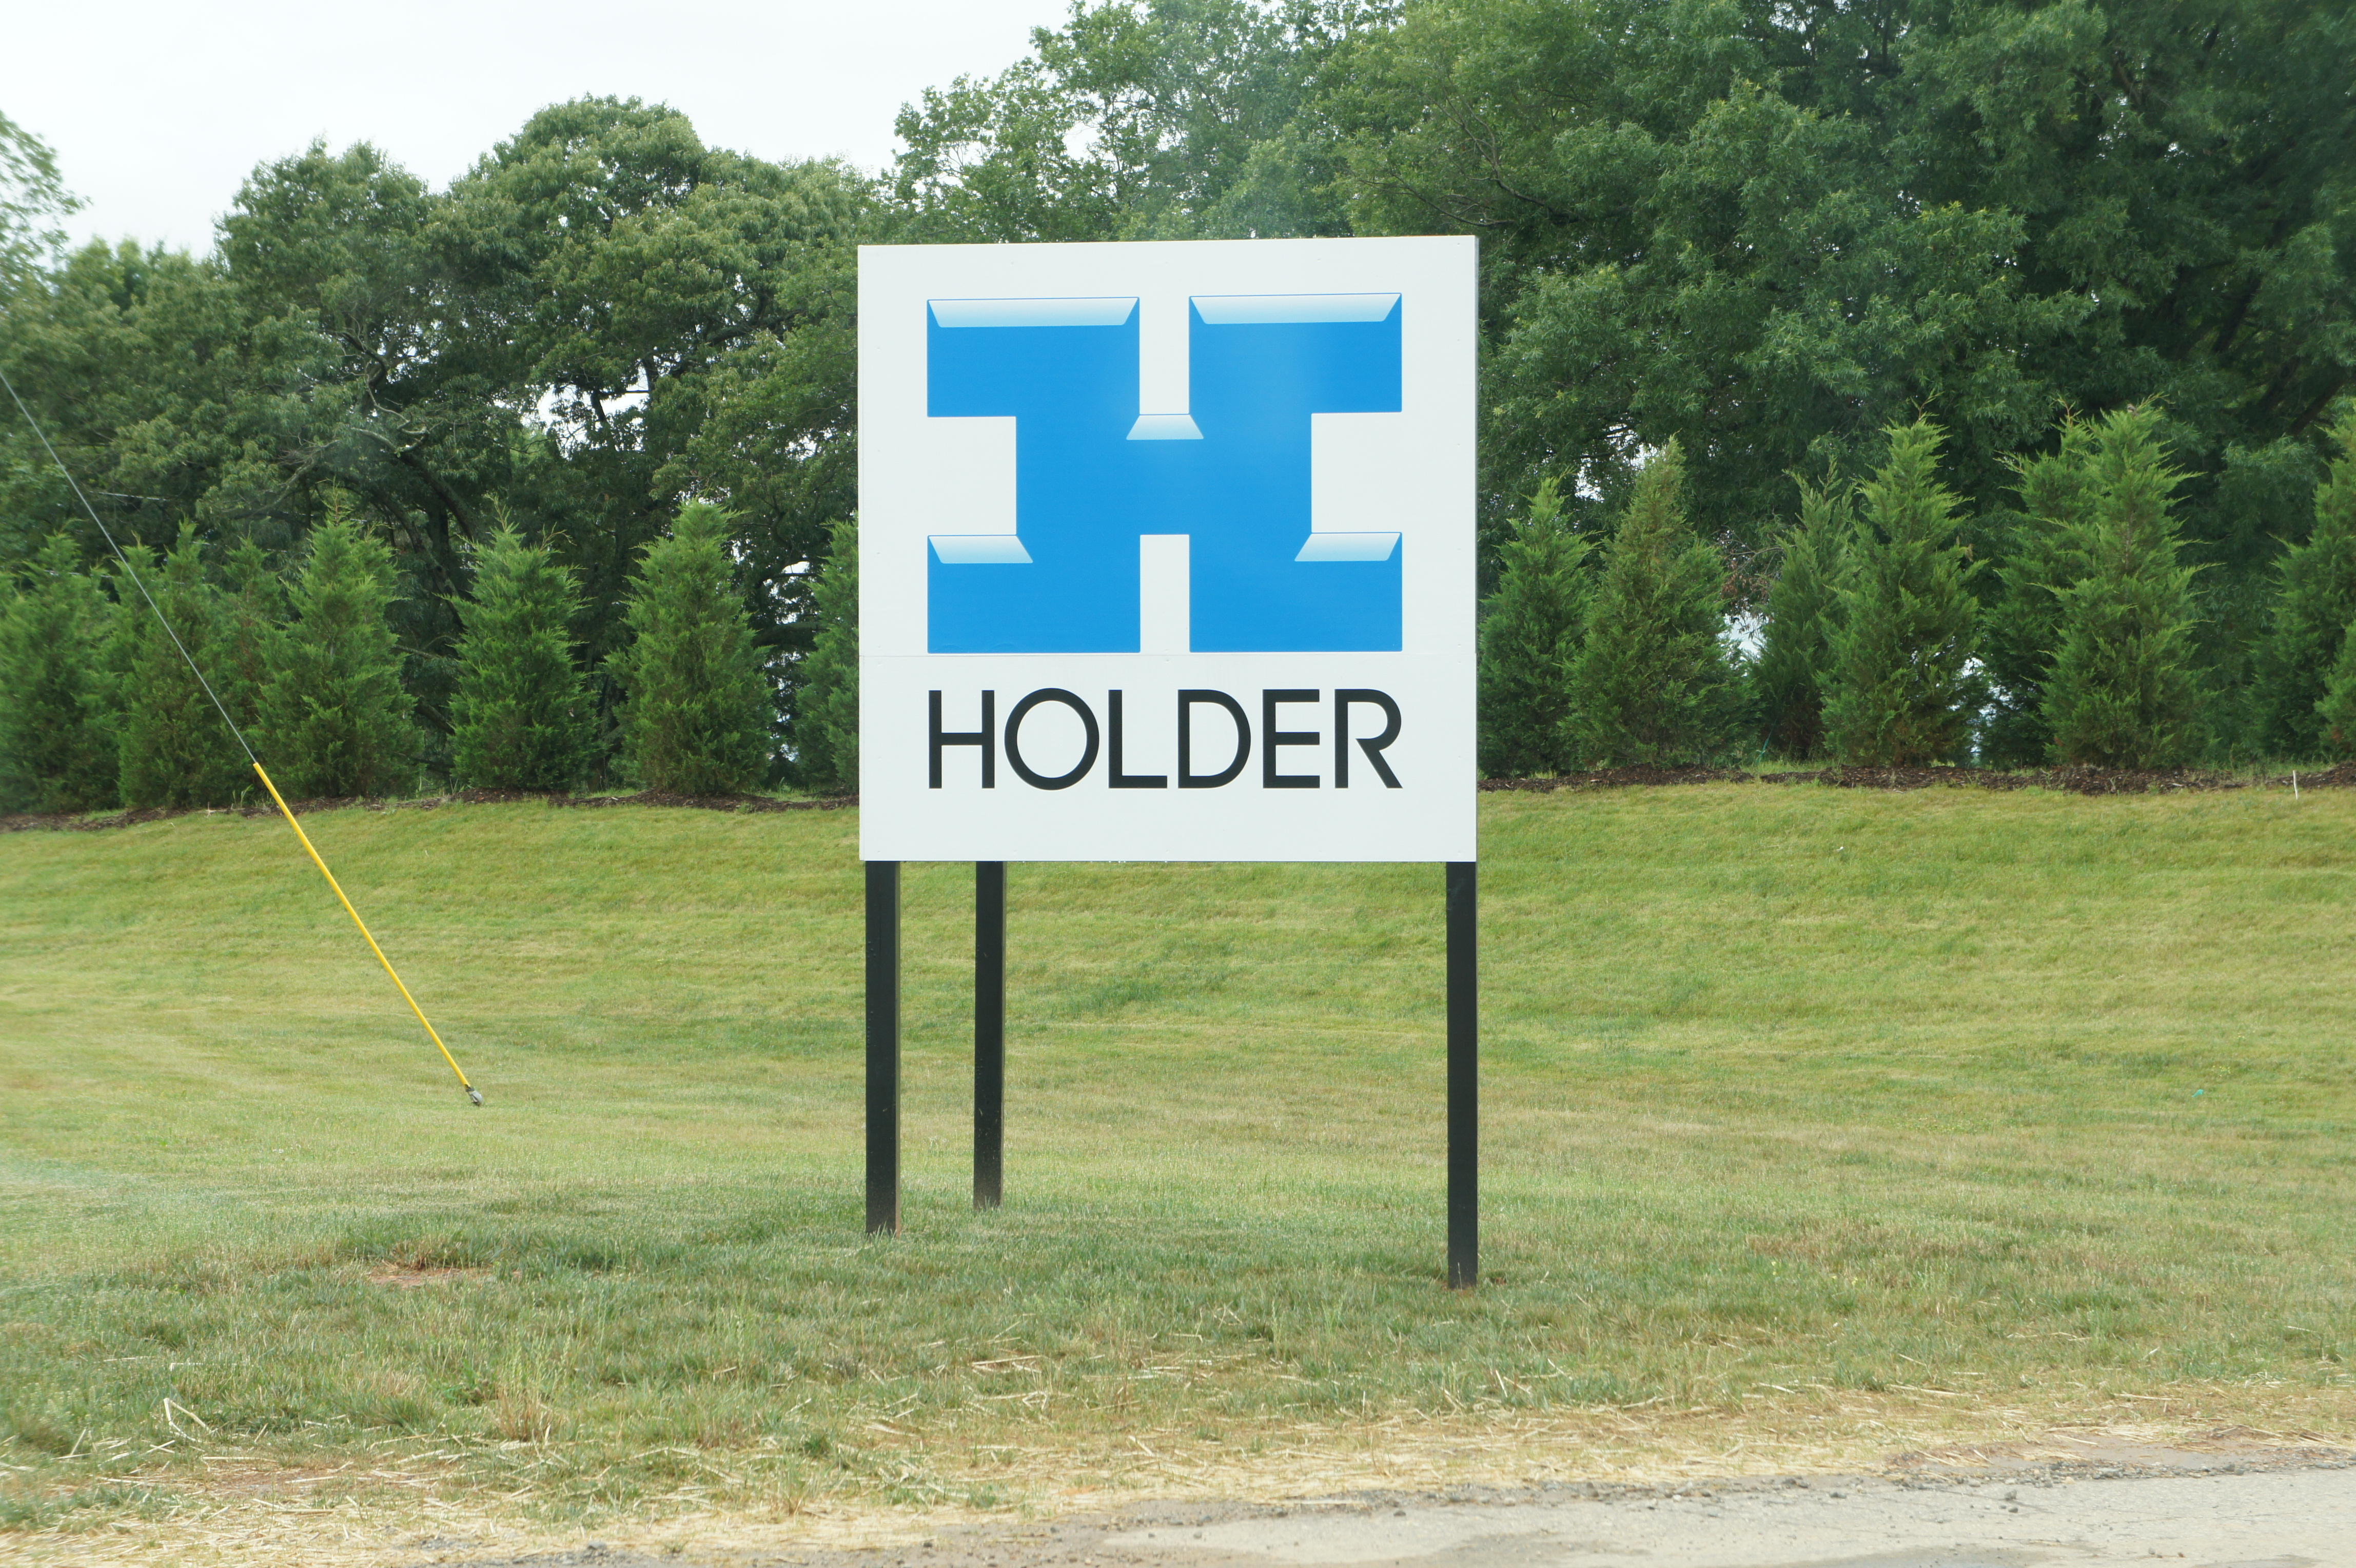 The Apple data center and solar farm are only marked by a sign for the construction company Holder Construction.